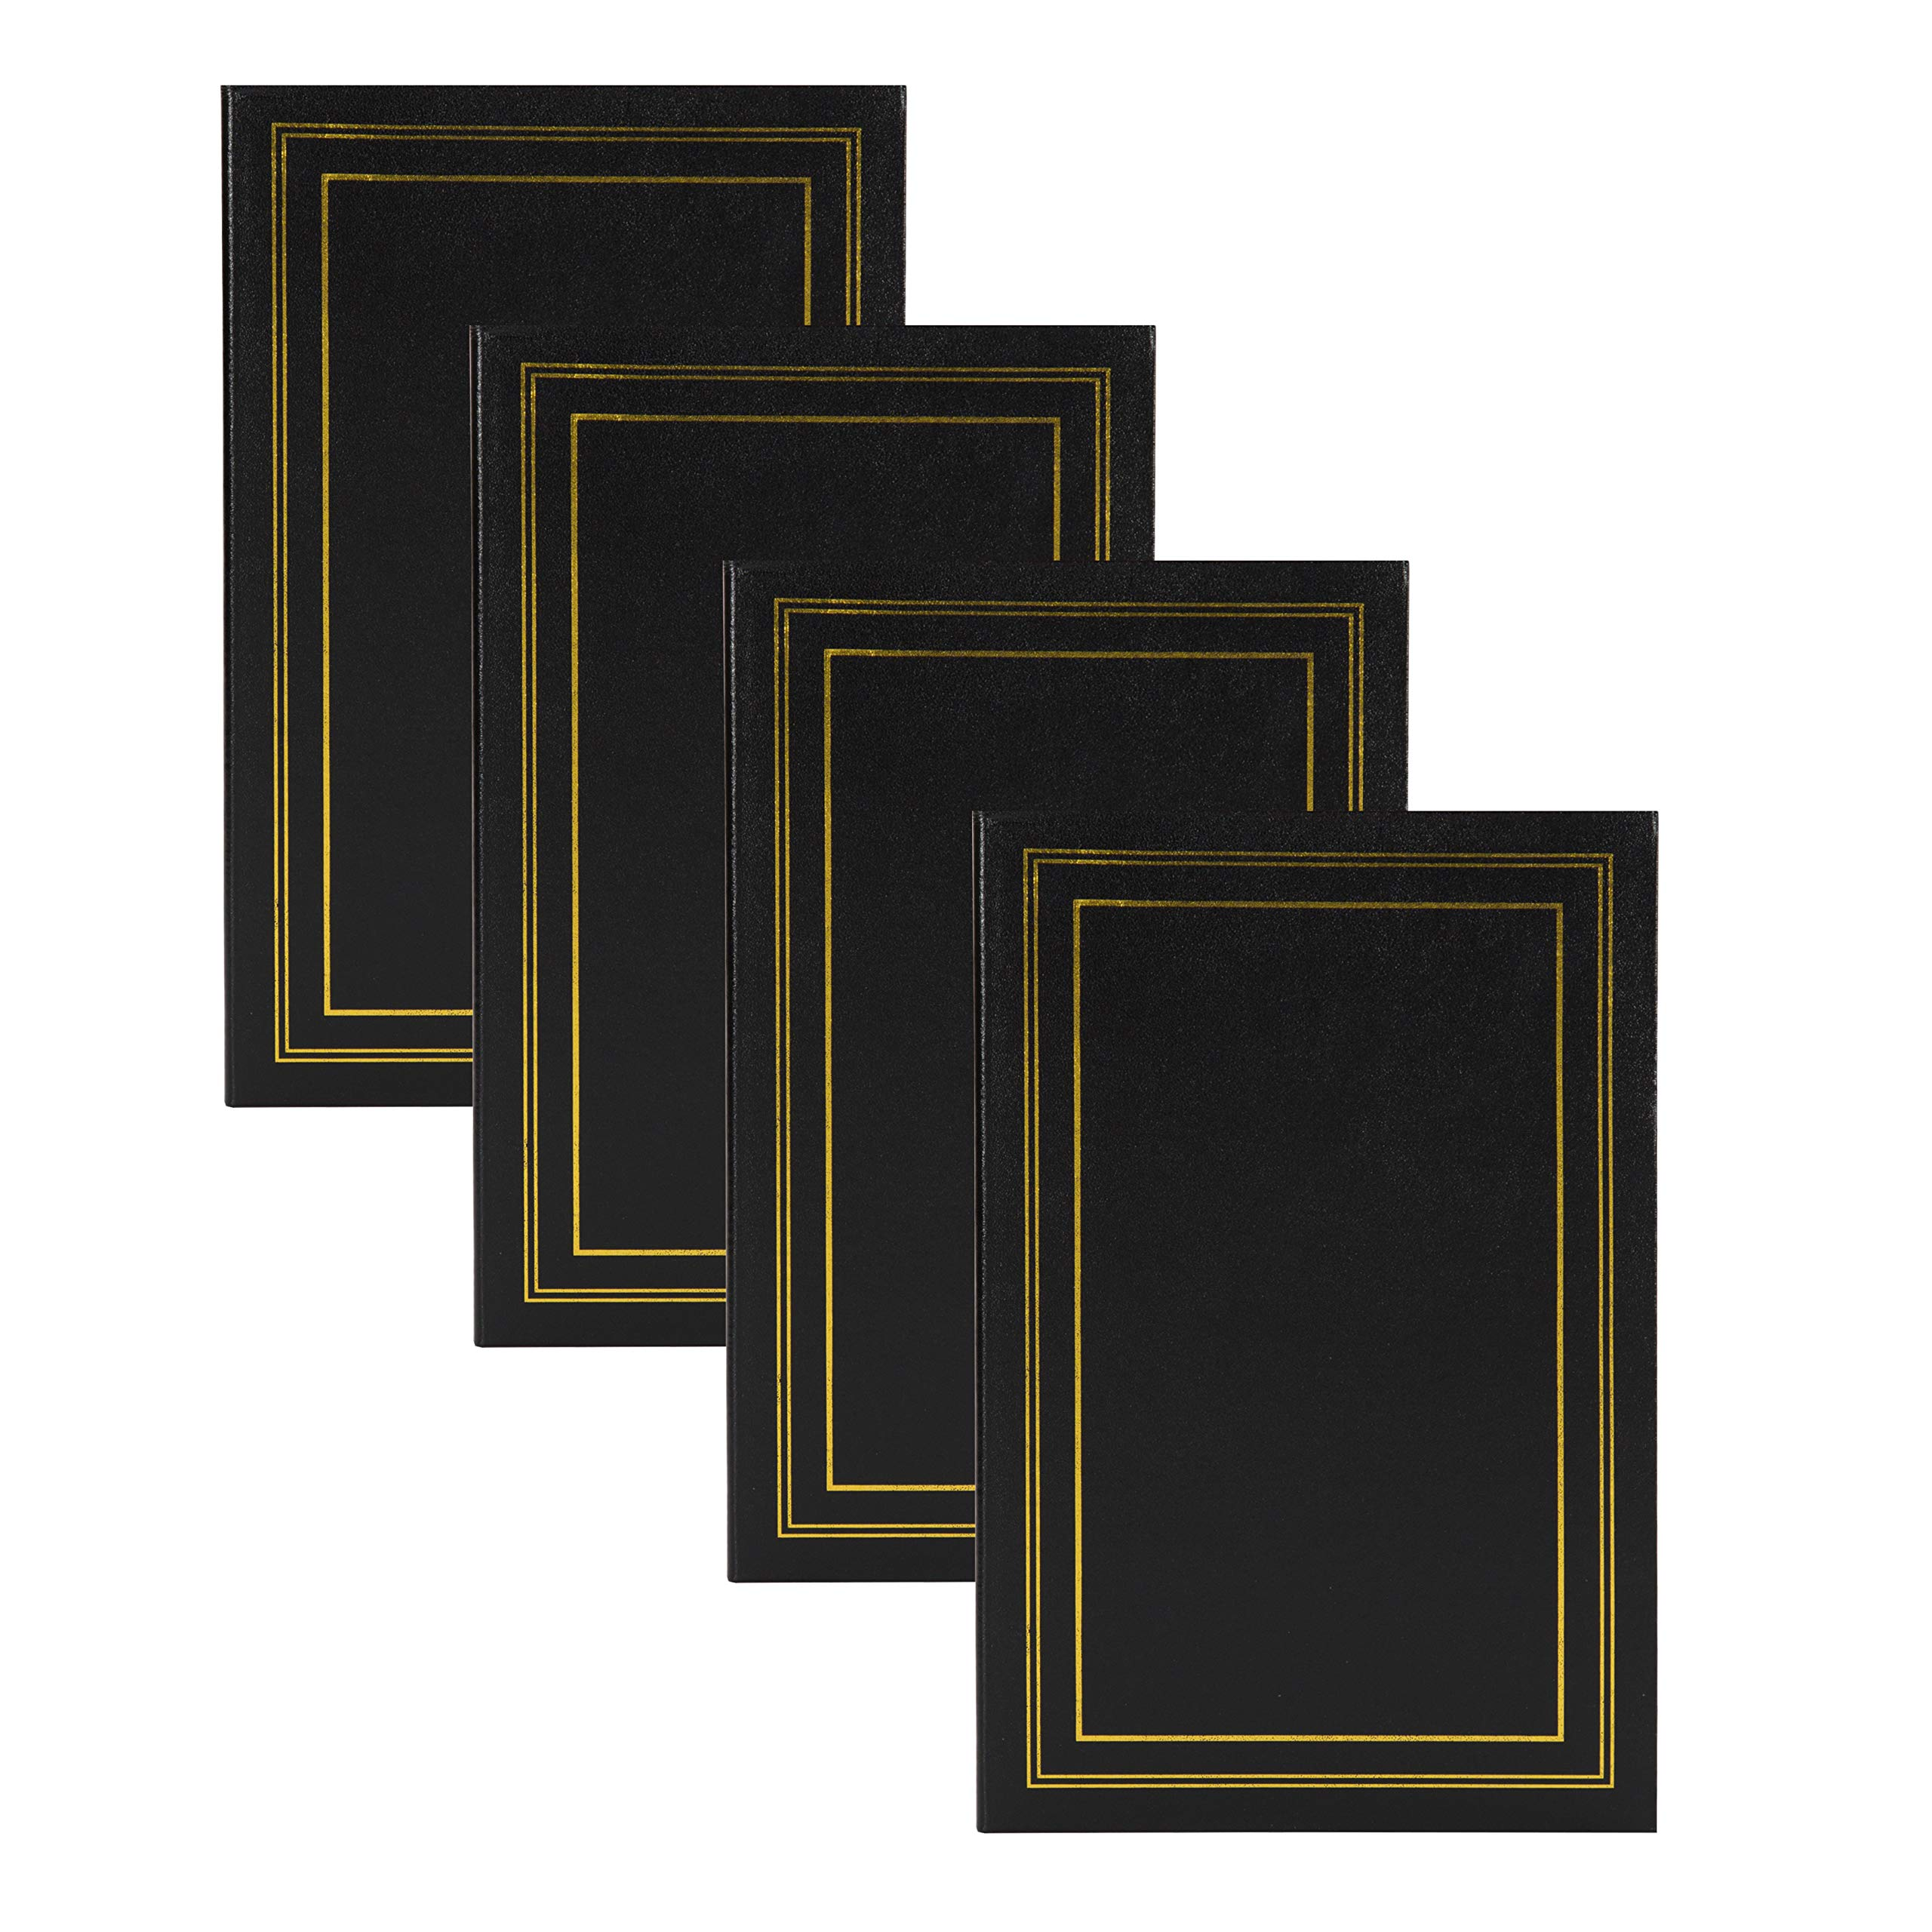 DesignOvation Traditional Photo Albums, Holds 300 4x6 Photos, Set of 4, Black